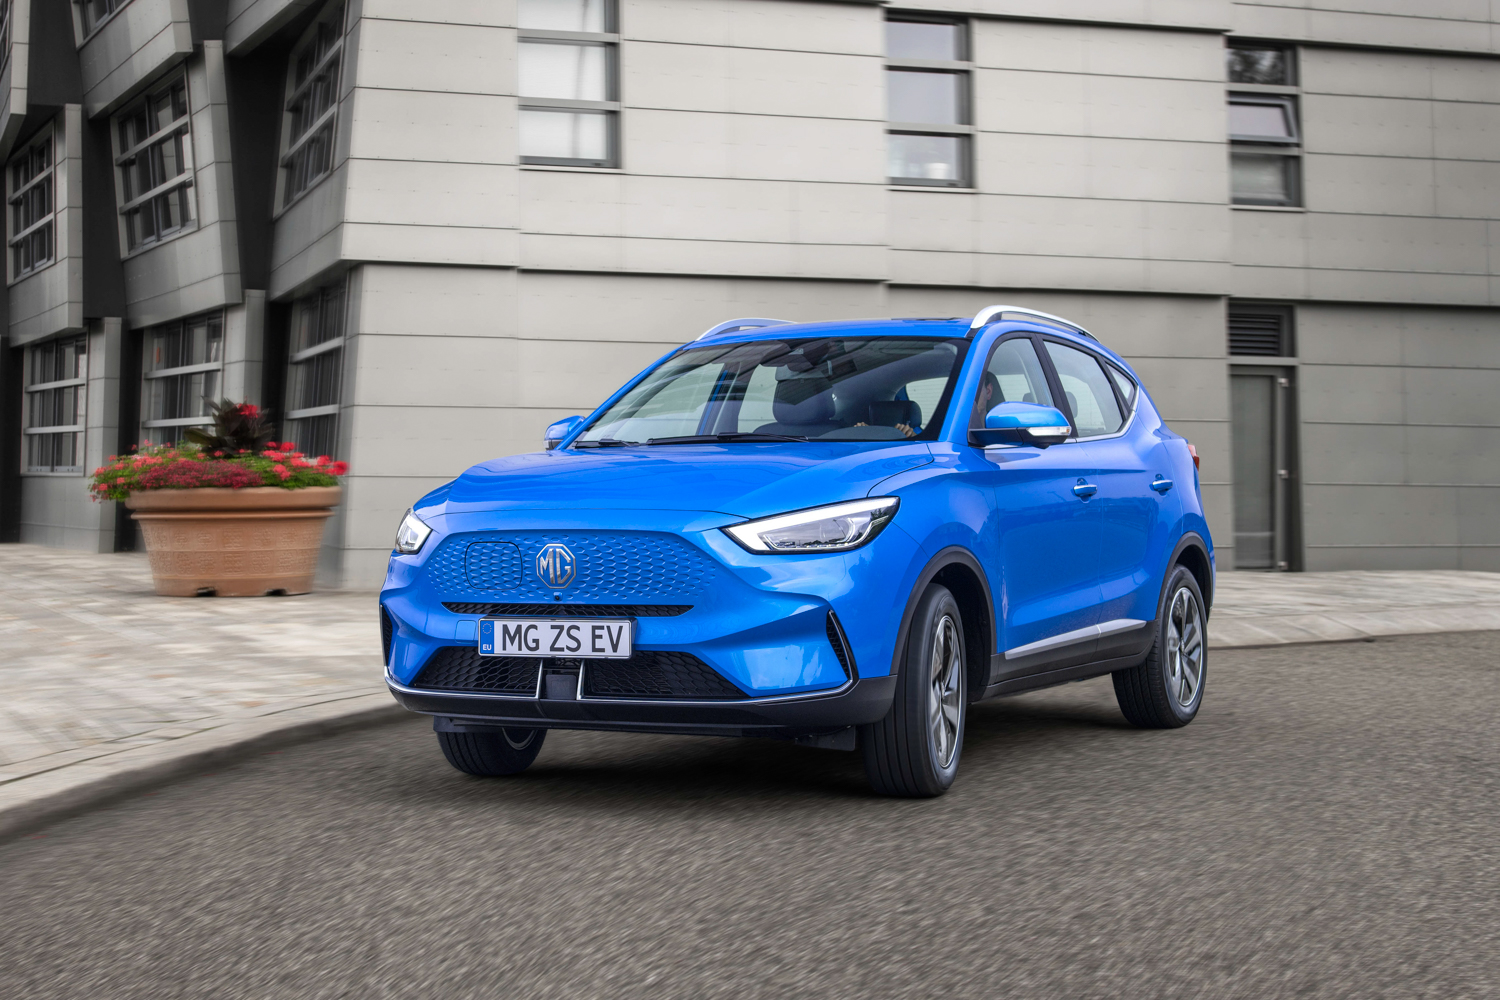 Car News | MG to introduce upgraded ZS EV with longer range | CompleteCar.ie